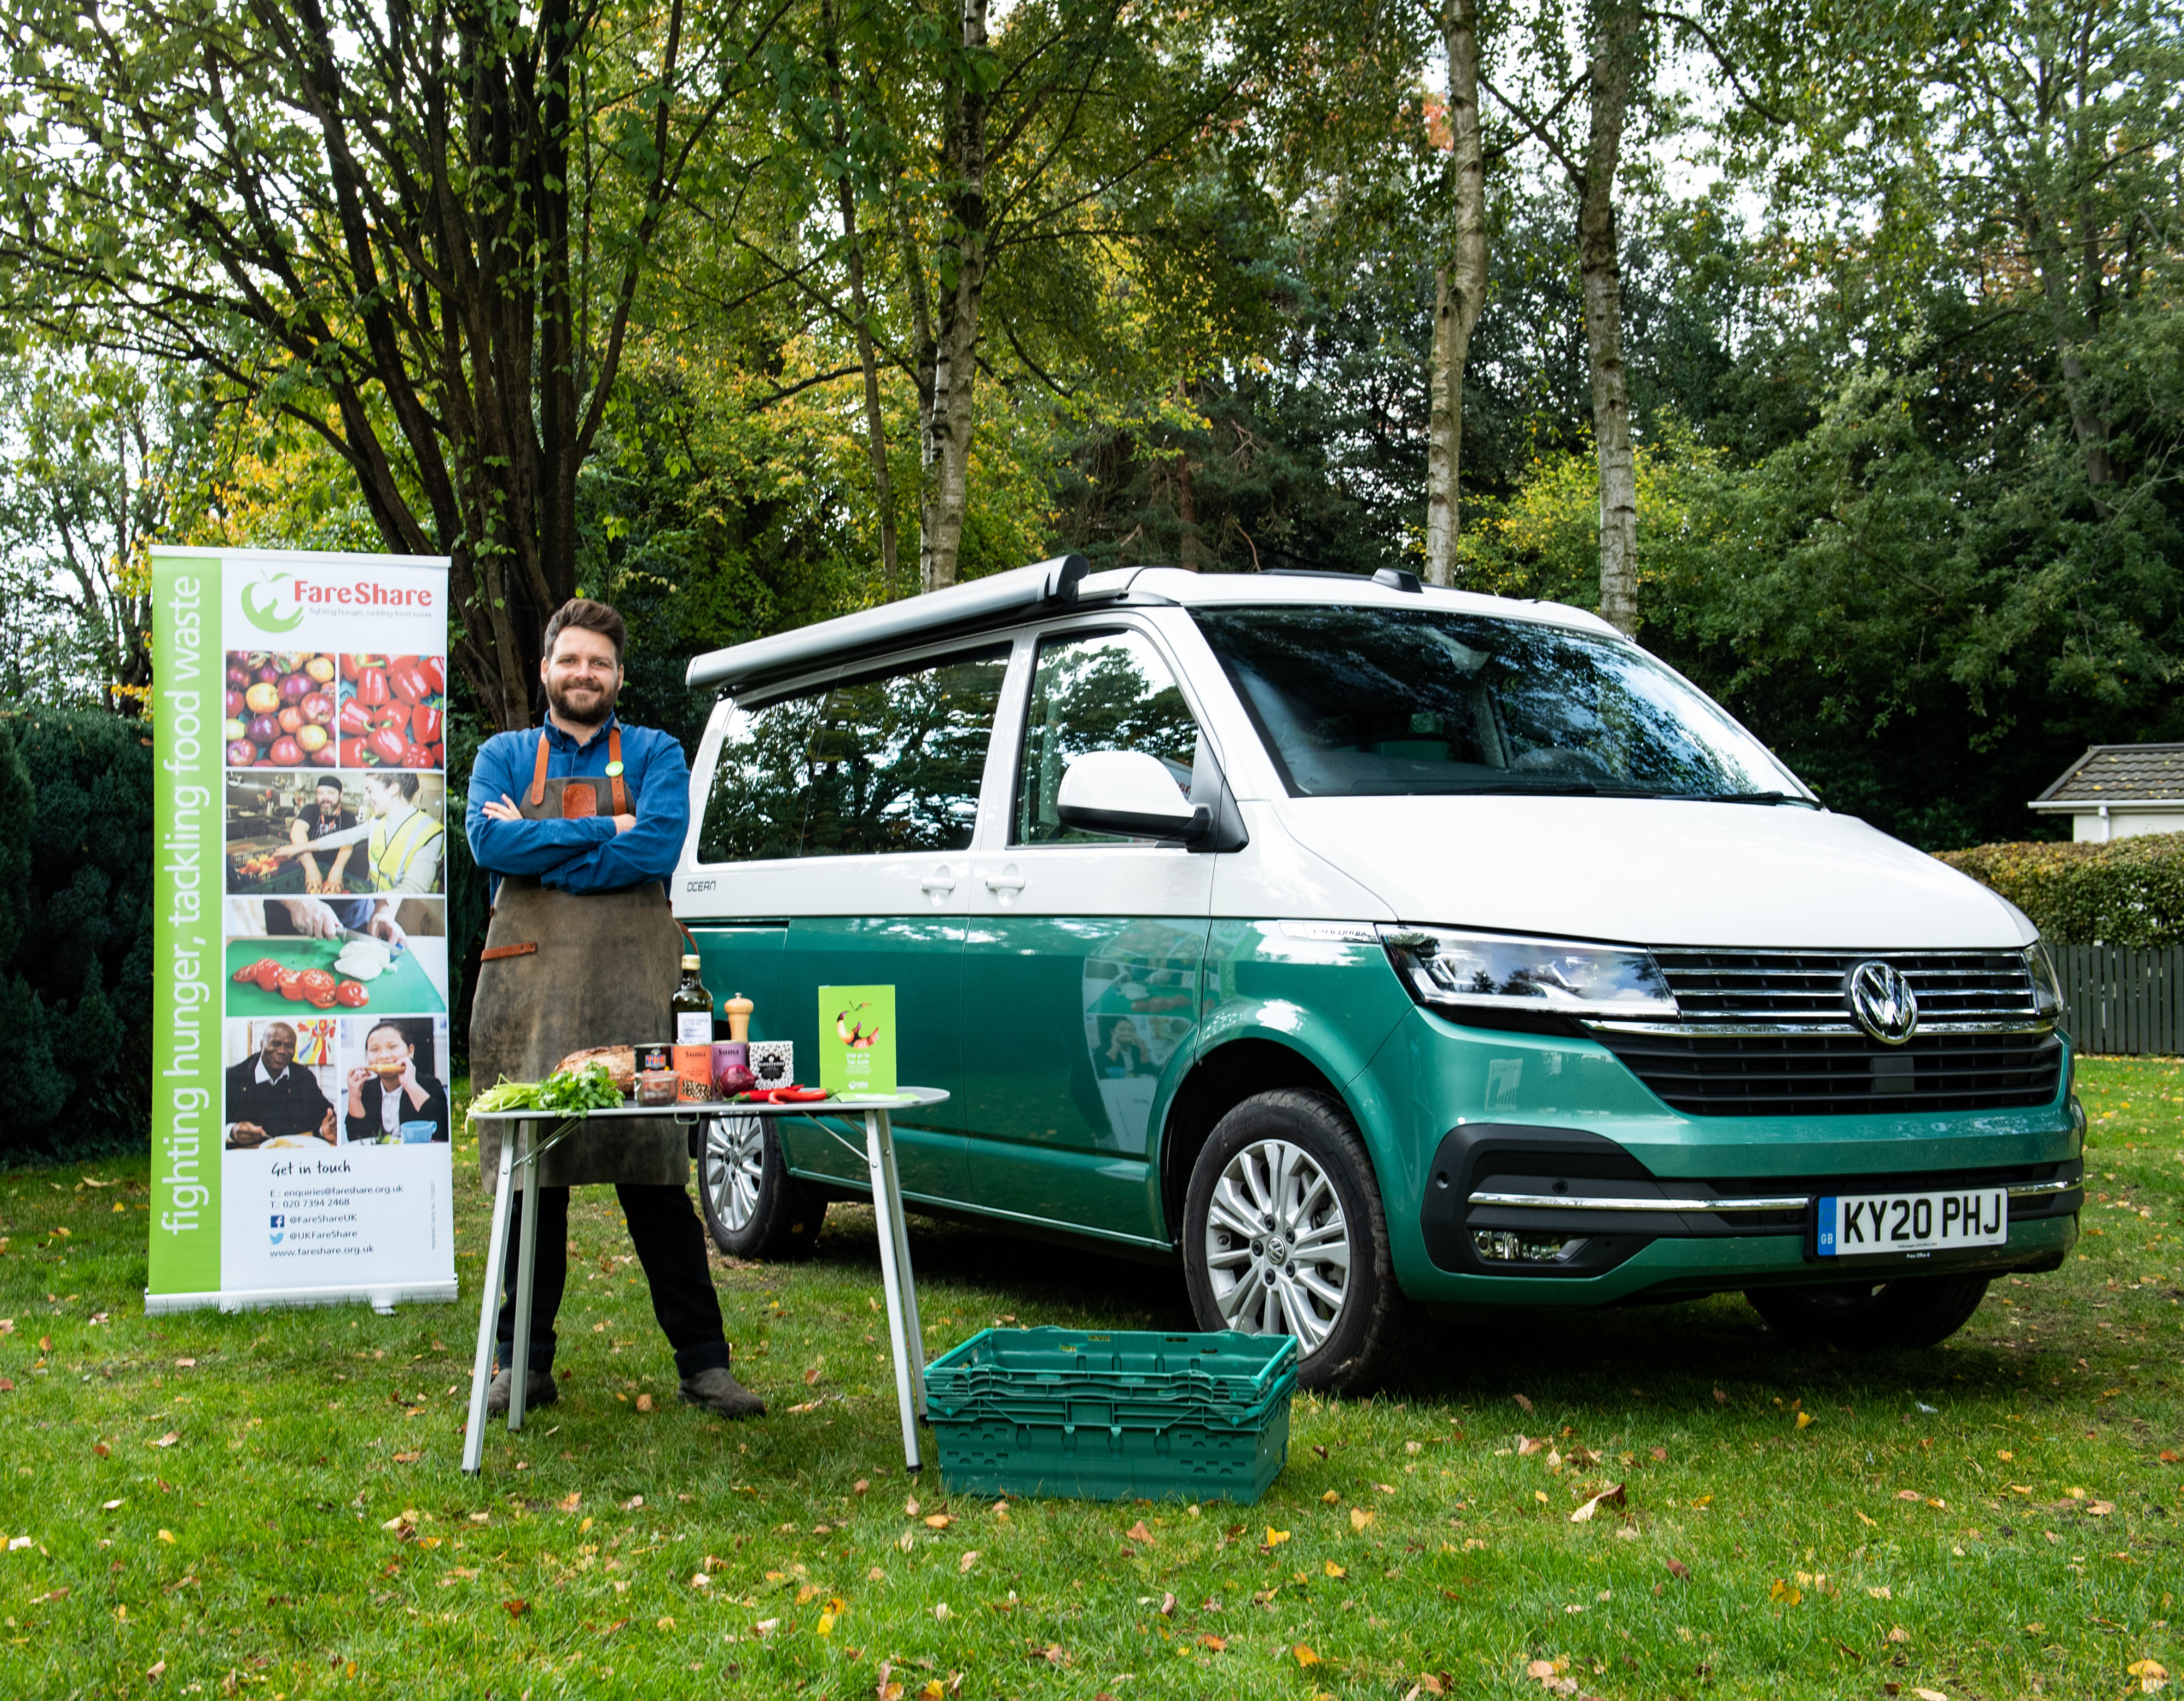 Tom Hunt partners with Volkswagen and FareShare to cook up zero-waste recipes in the back of a van